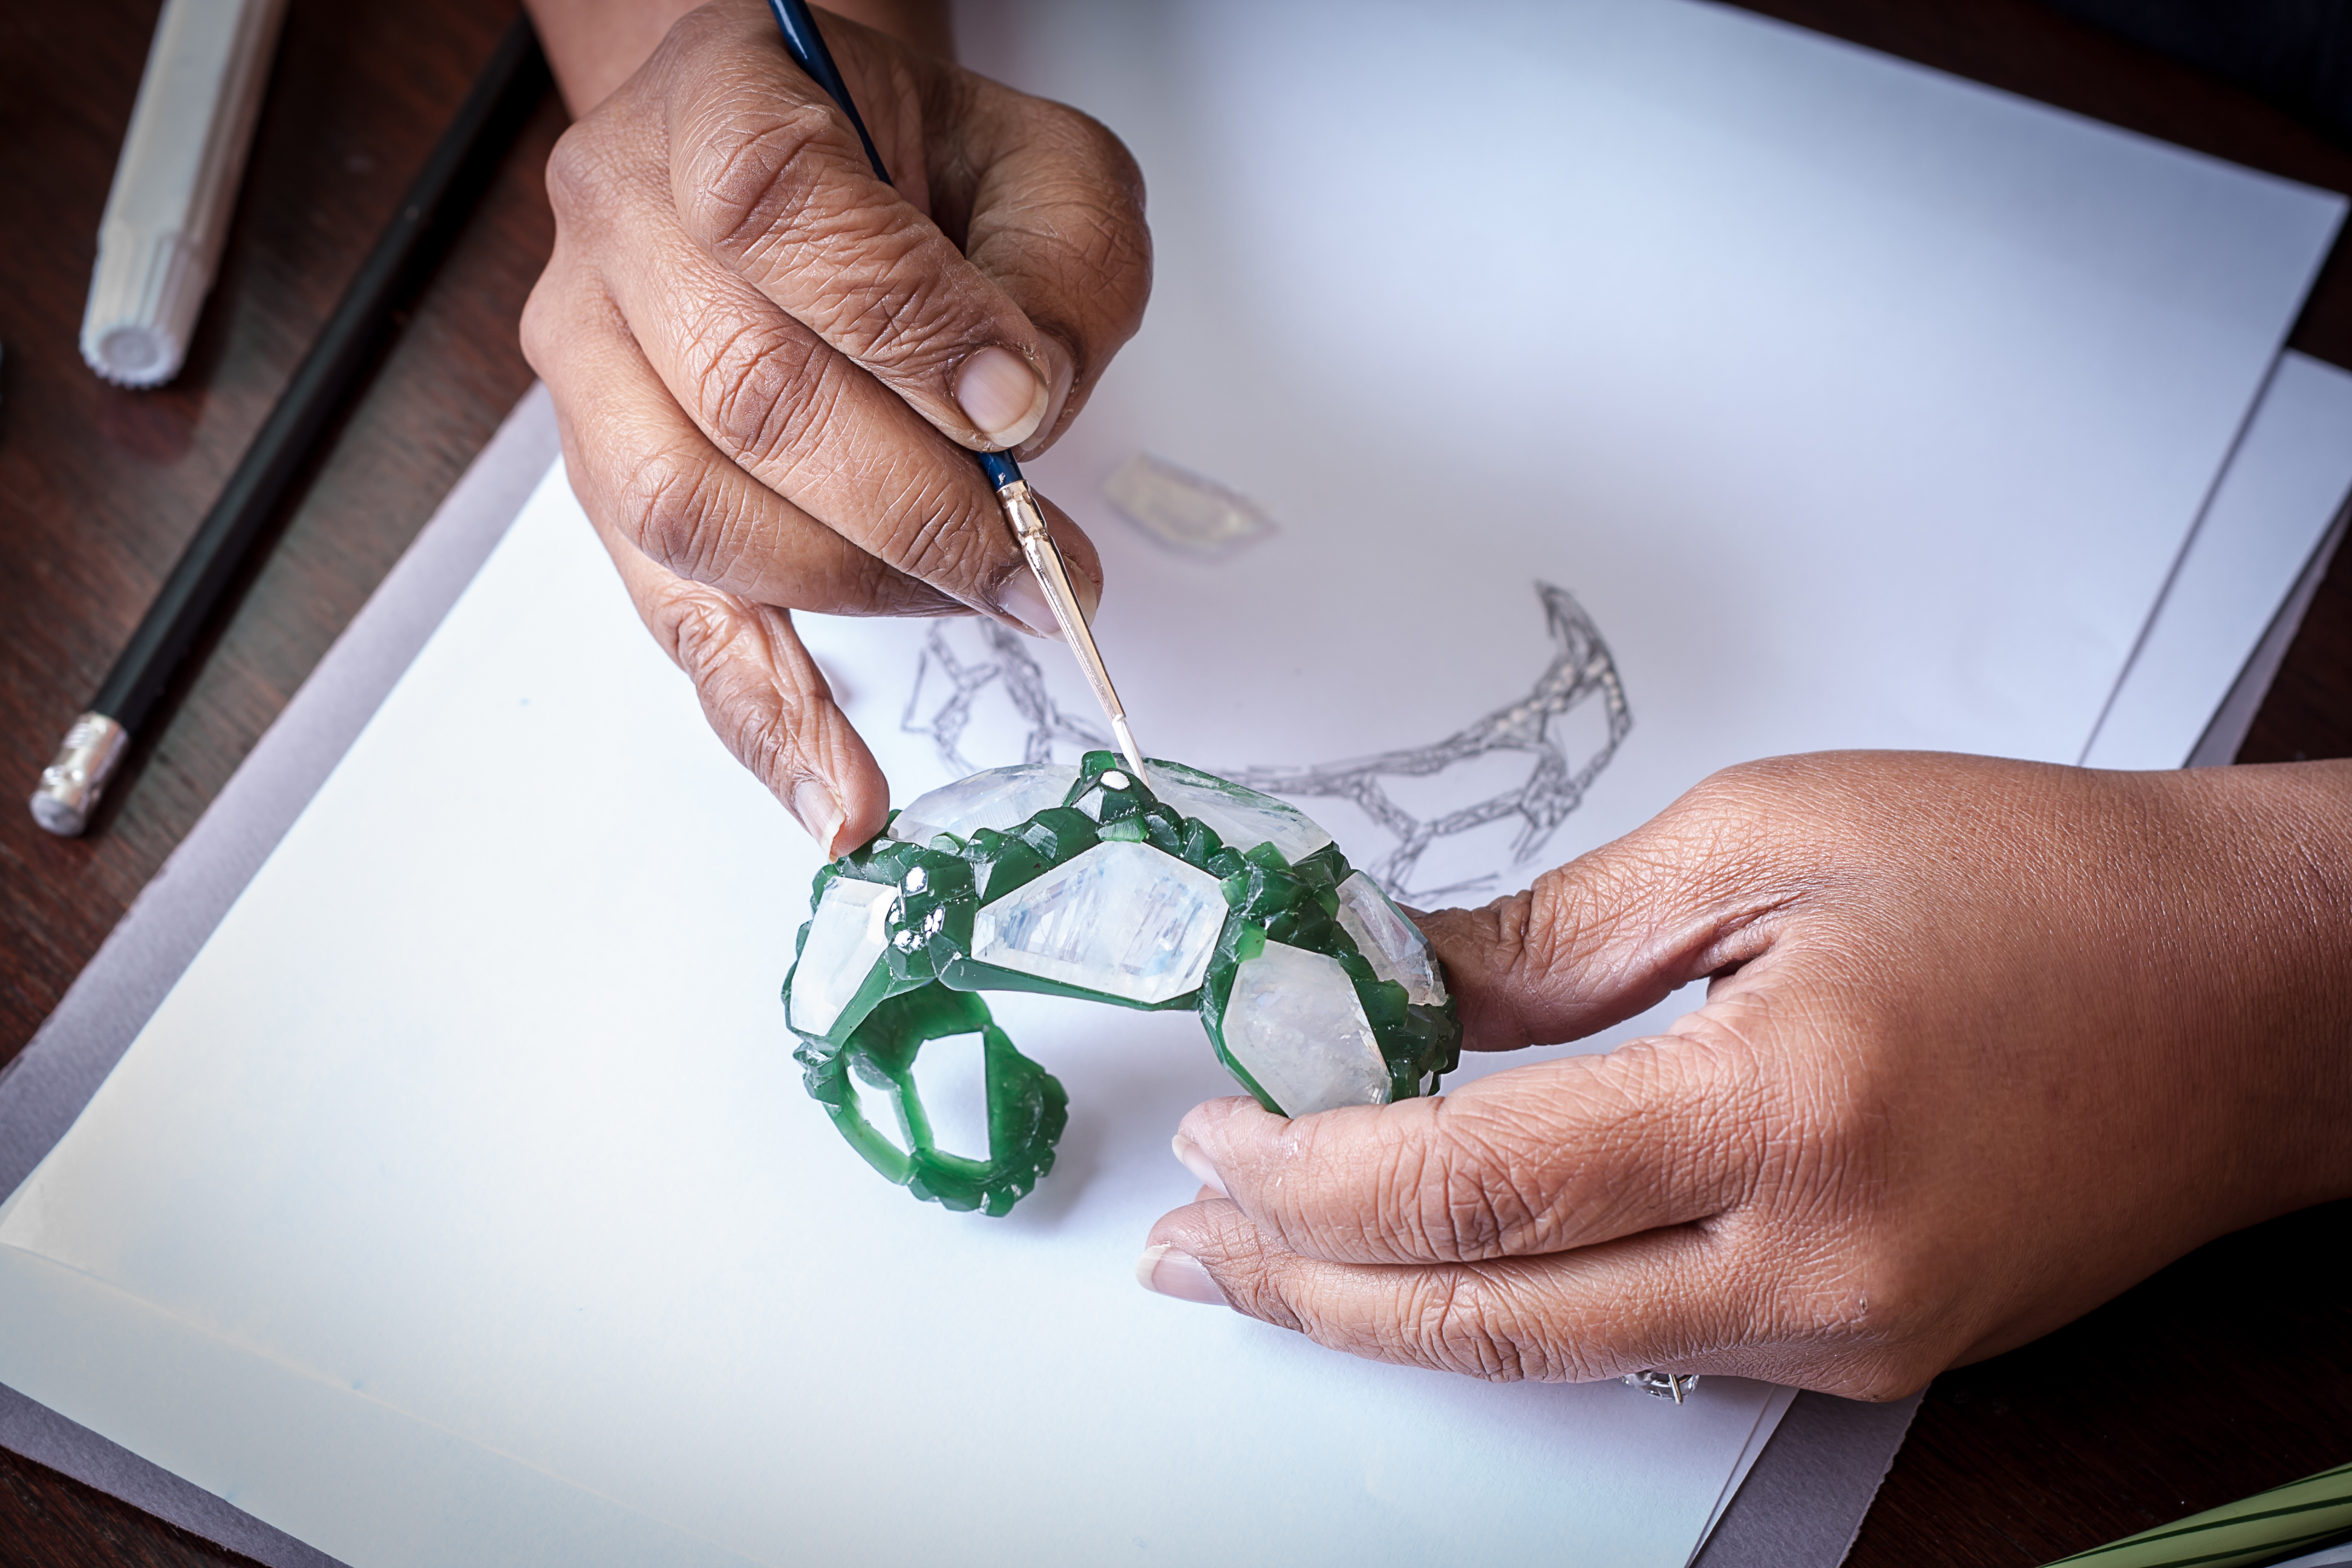 Neha Dani working on the 'Aialik' cuff from the 'Glacier' collection wax model